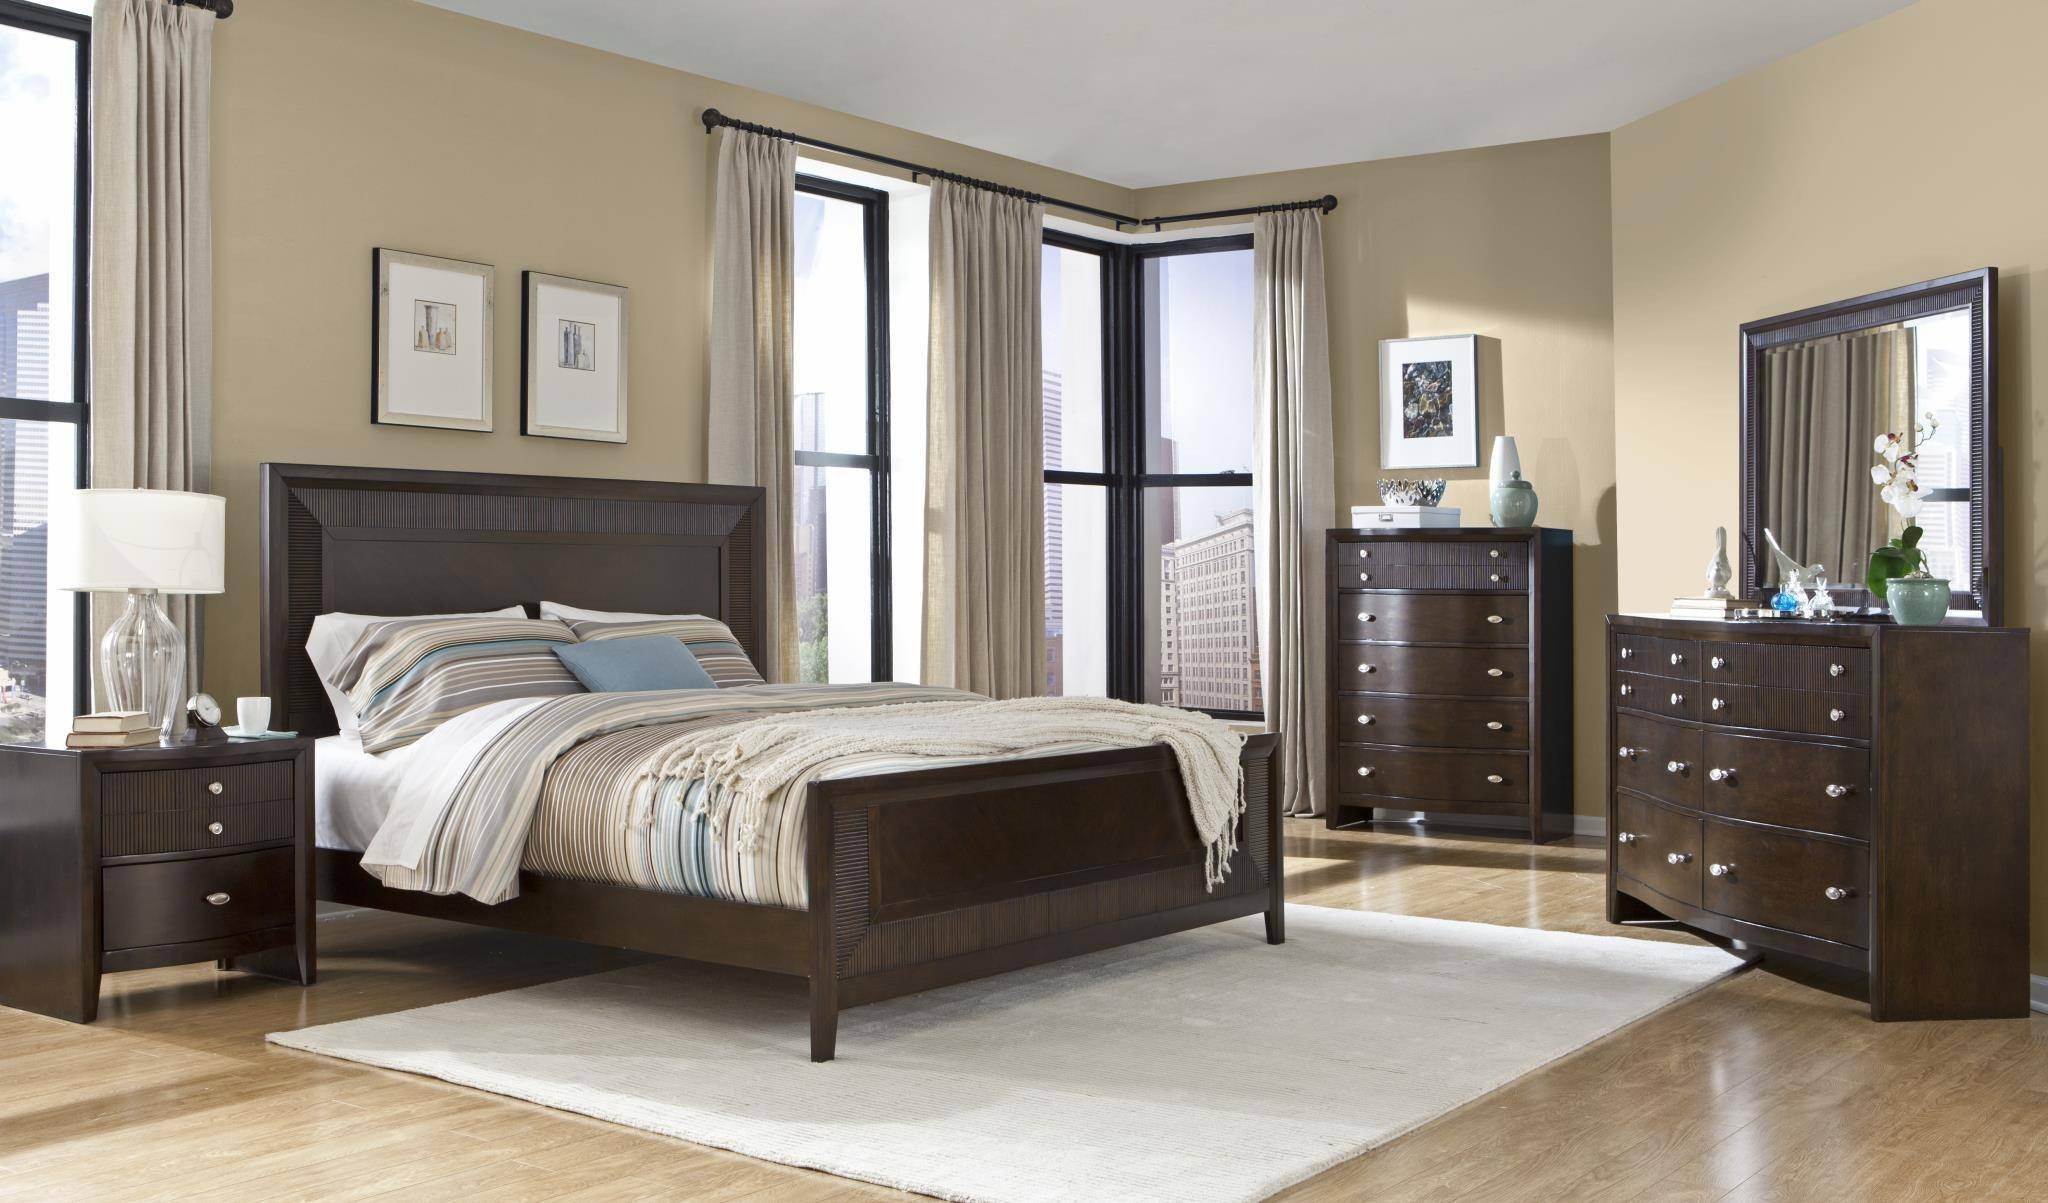 King Bedroom Furniture Set Best Of Myco Furniture Em3111k Empire Espresso Finish Ribbed Wood King Panel Bedroom Set 4pcs